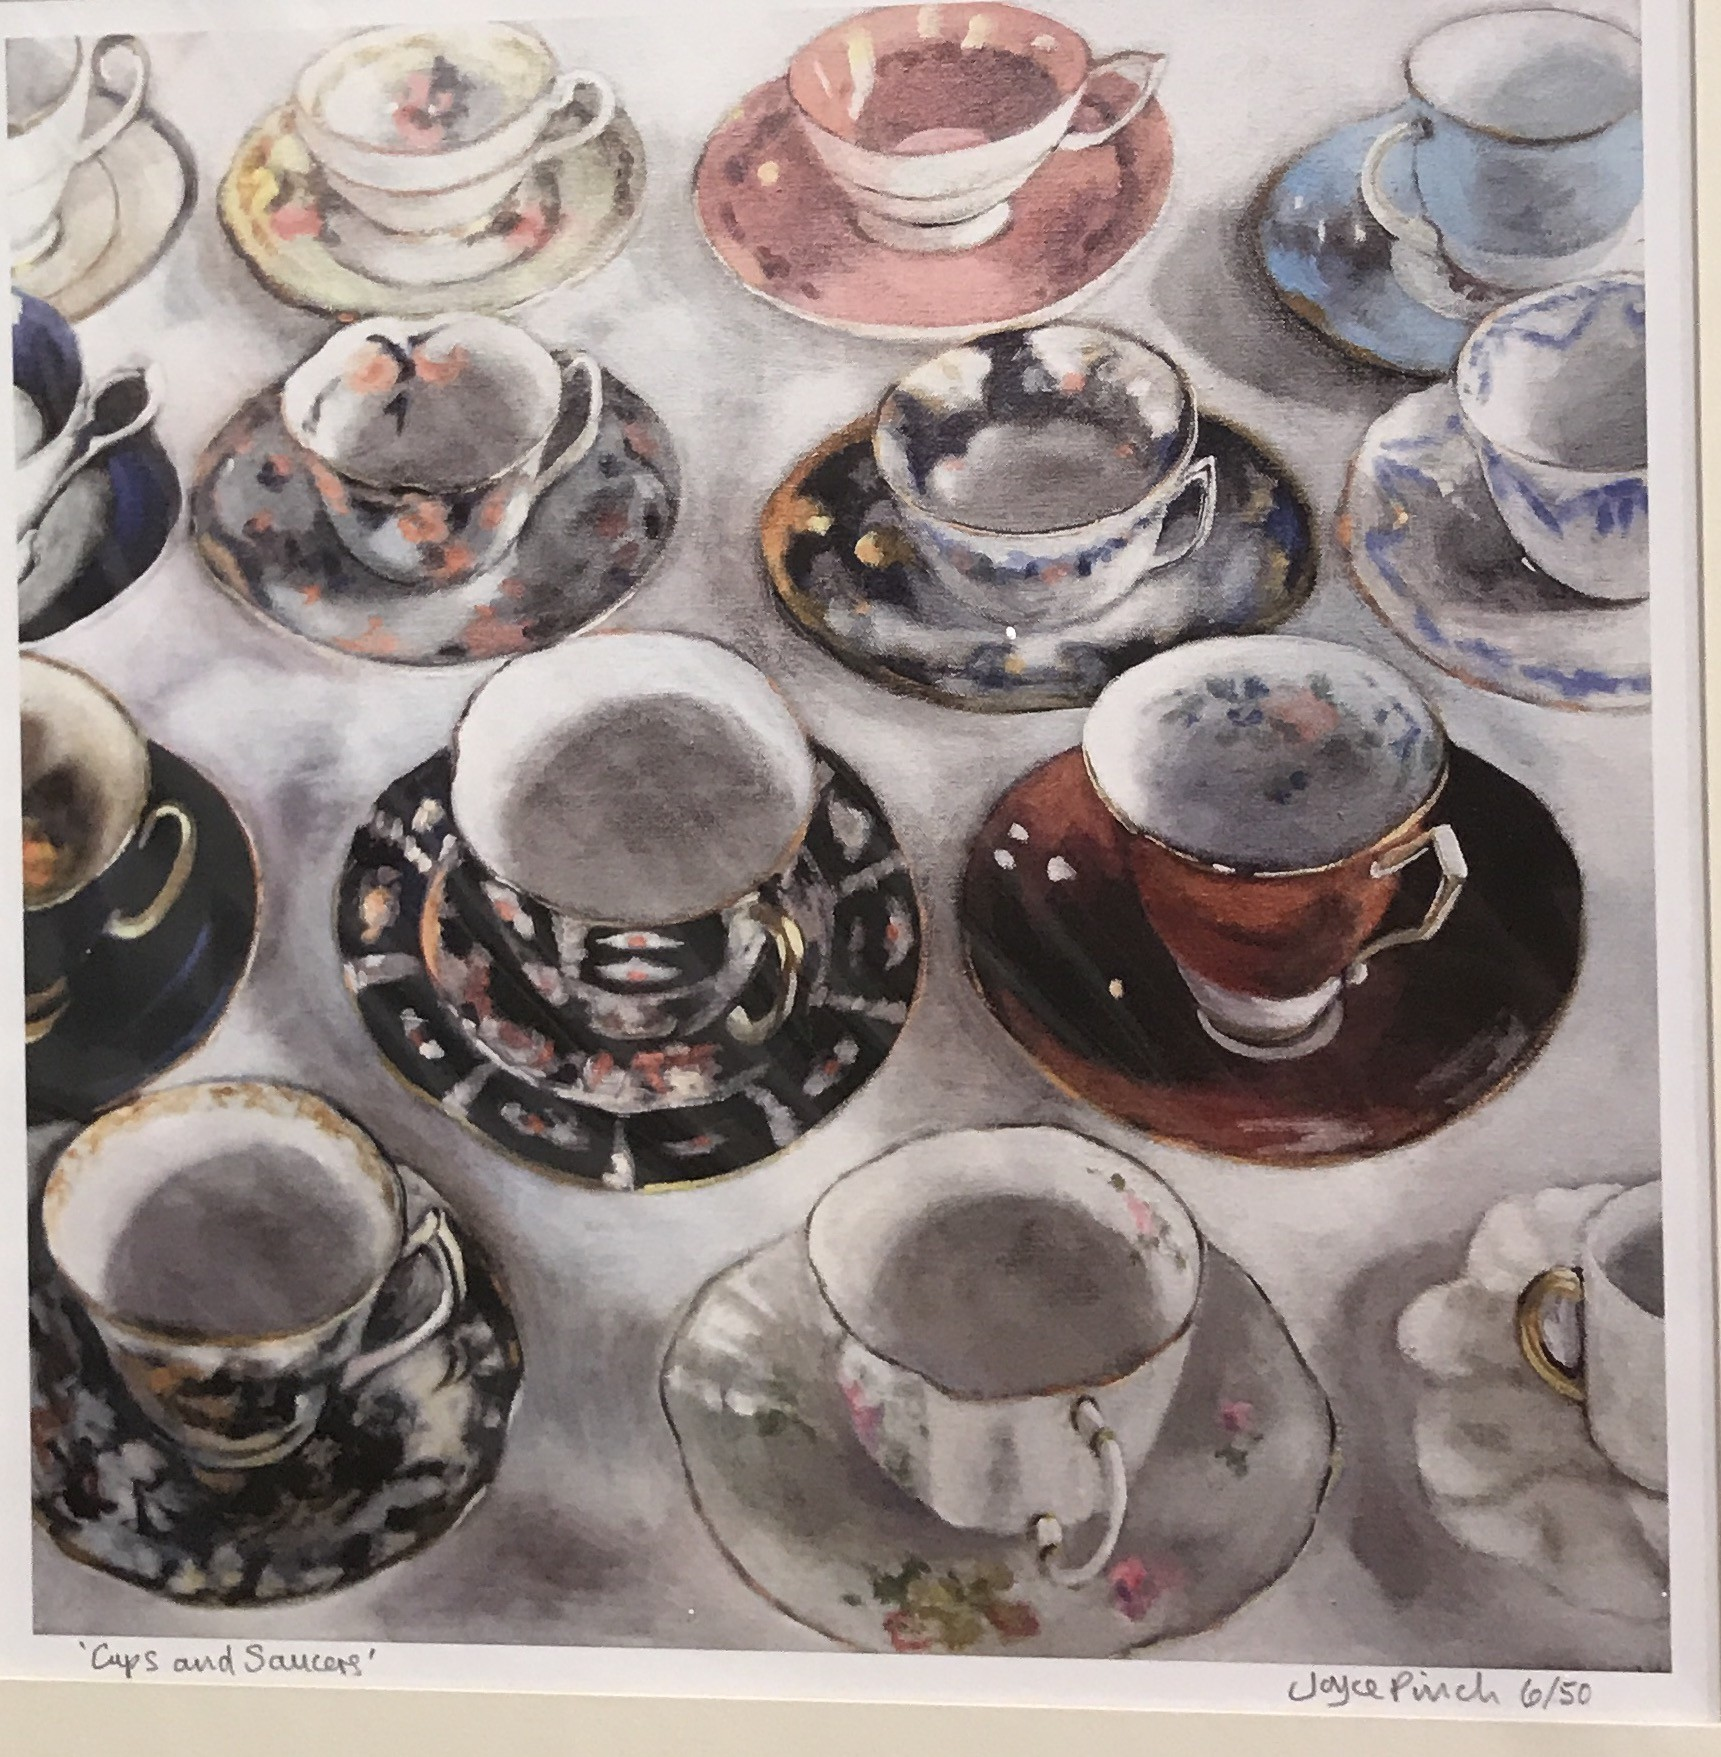 """<span class=""""link fancybox-details-link""""><a href=""""/artists/34-joyce-pinch/works/398-joyce-pinch-cups-and-saucers/"""">View Detail Page</a></span><div class=""""artist""""><strong>Joyce Pinch</strong></div> <div class=""""title""""><em>Cups and saucers</em></div> <div class=""""medium"""">Limited Edition Print (framed)</div> <div class=""""dimensions"""">26 x 26 cm</div> <div class=""""edition_details"""">Edition of 50</div>"""